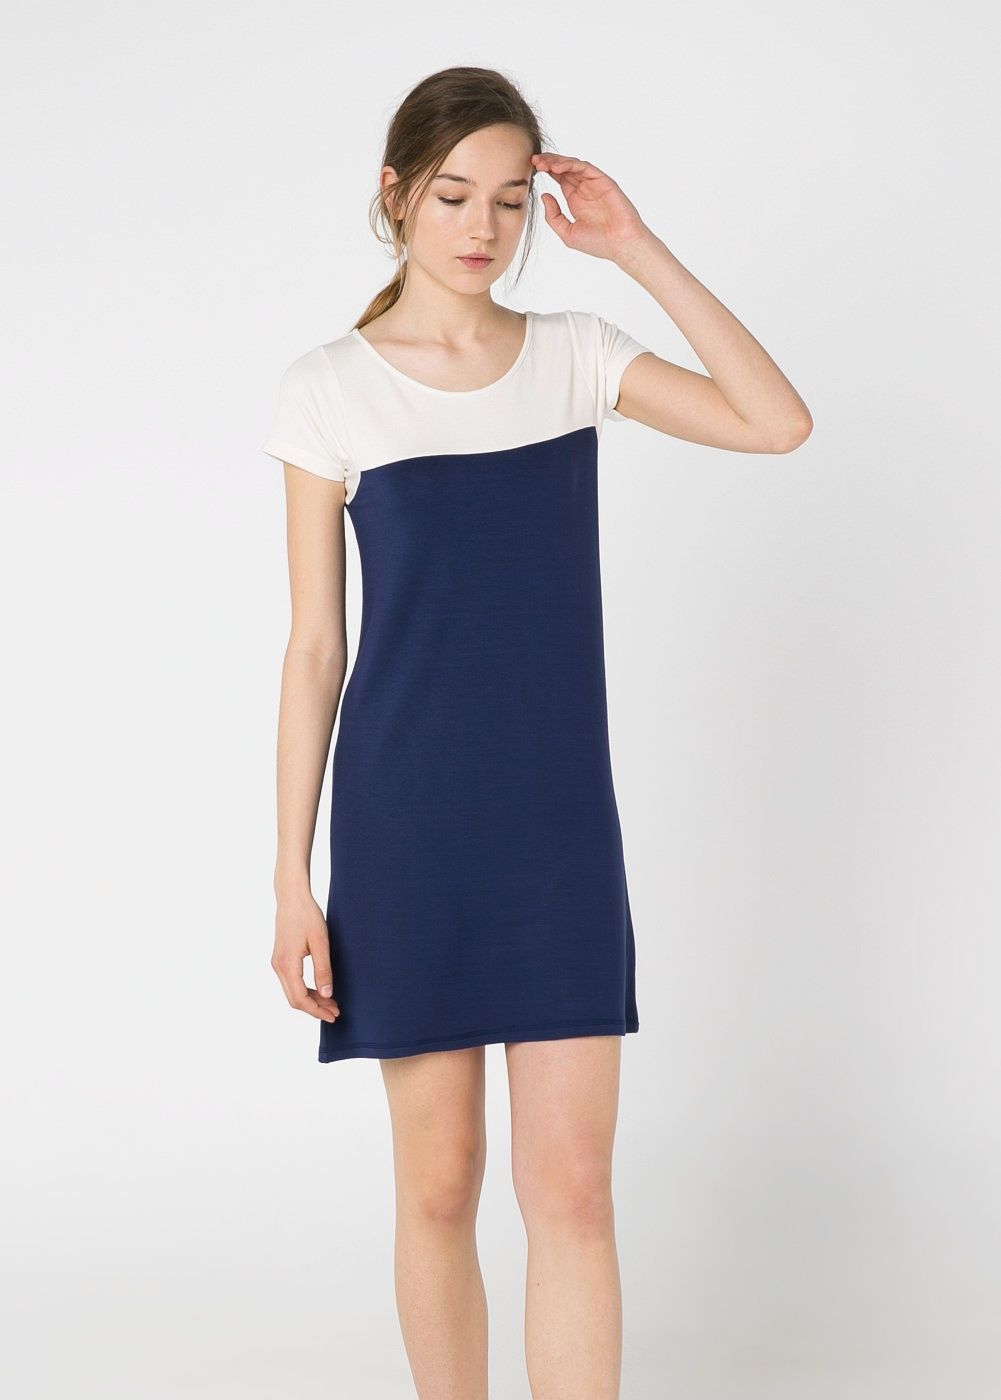 Oyes cocktail dress